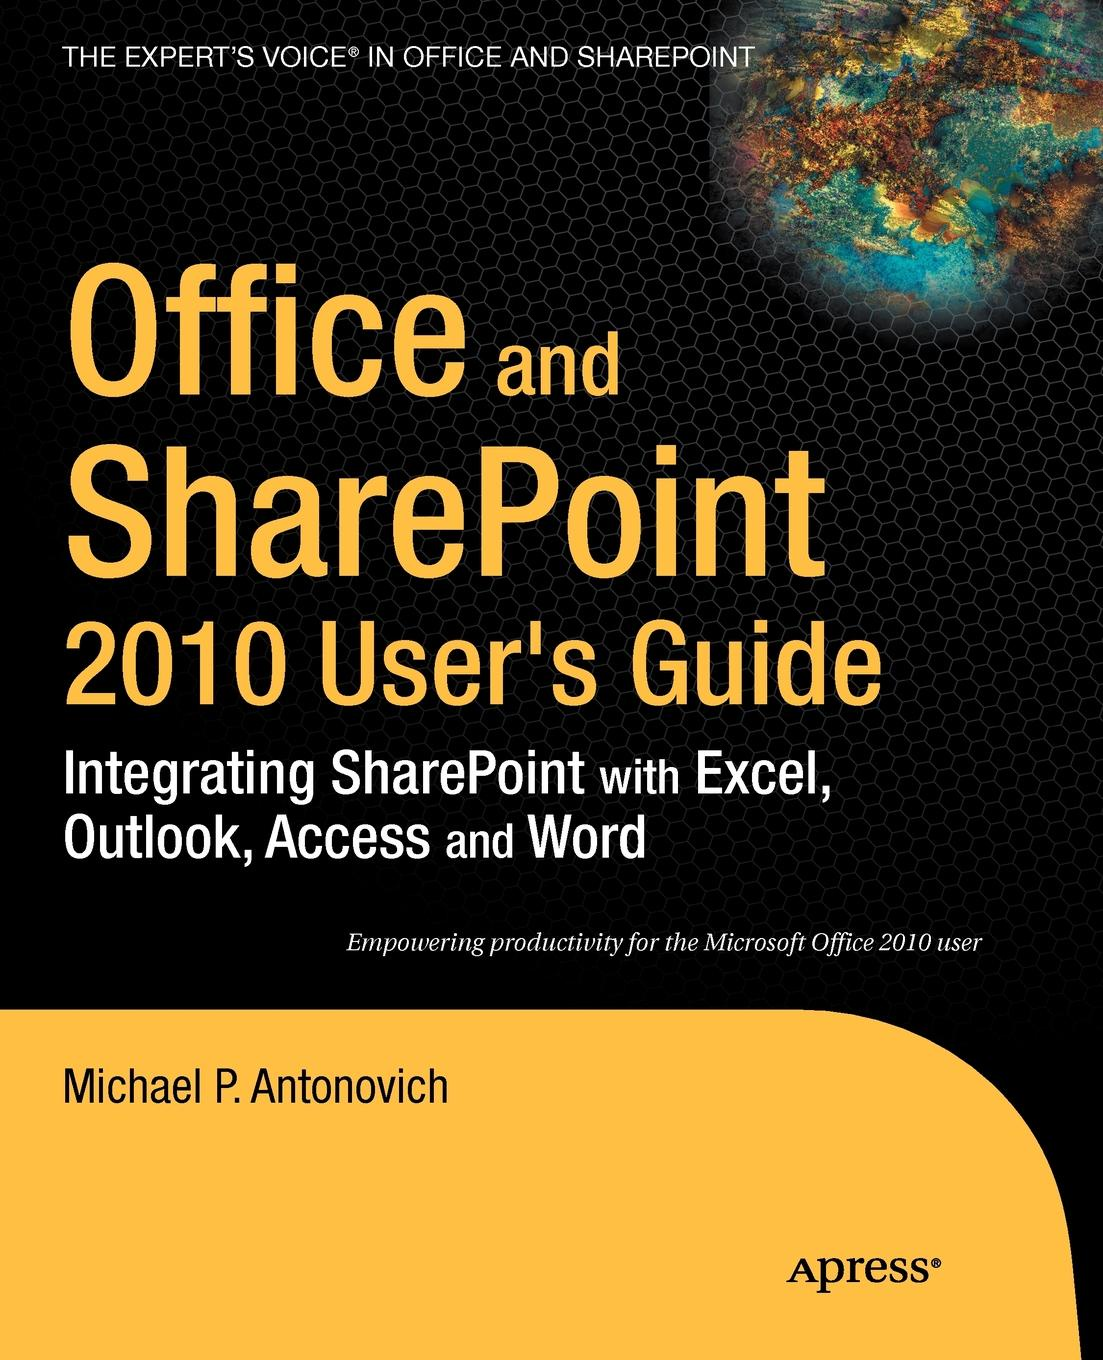 Фото - Michael P. Antonovich Office and Sharepoint 2010 User's Guide. Integrating Sharepoint with Excel, Outlook, Access and Word sivakumar harinath professional microsoft powerpivot for excel and sharepoint